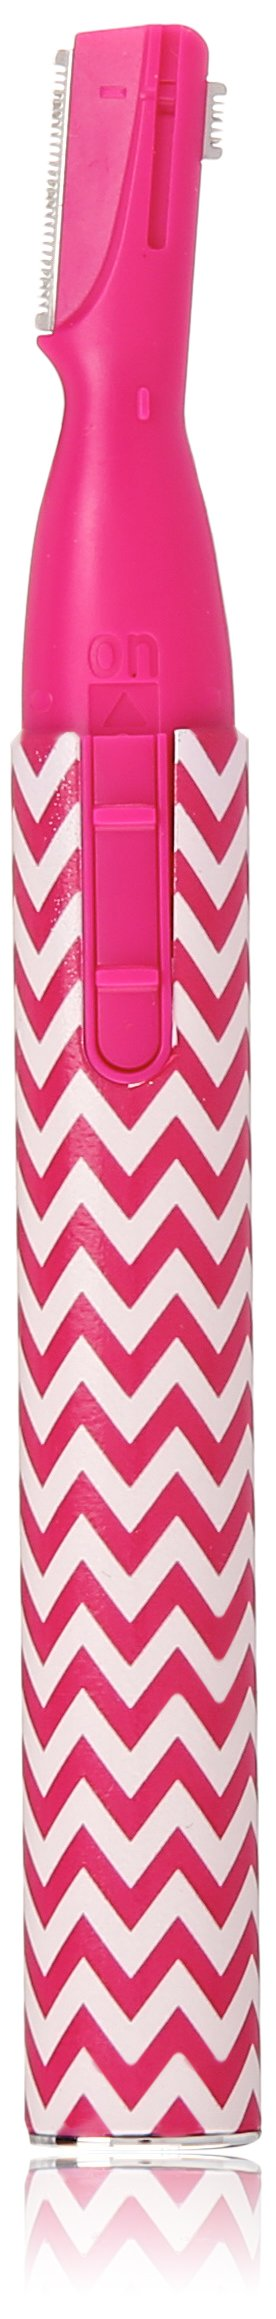 Clio Designs - Clio Designs Model - 3901 Beautytrim Personal Hair Trimmer, Super Cute Designs That Everyone Loves (Colors May Vary)